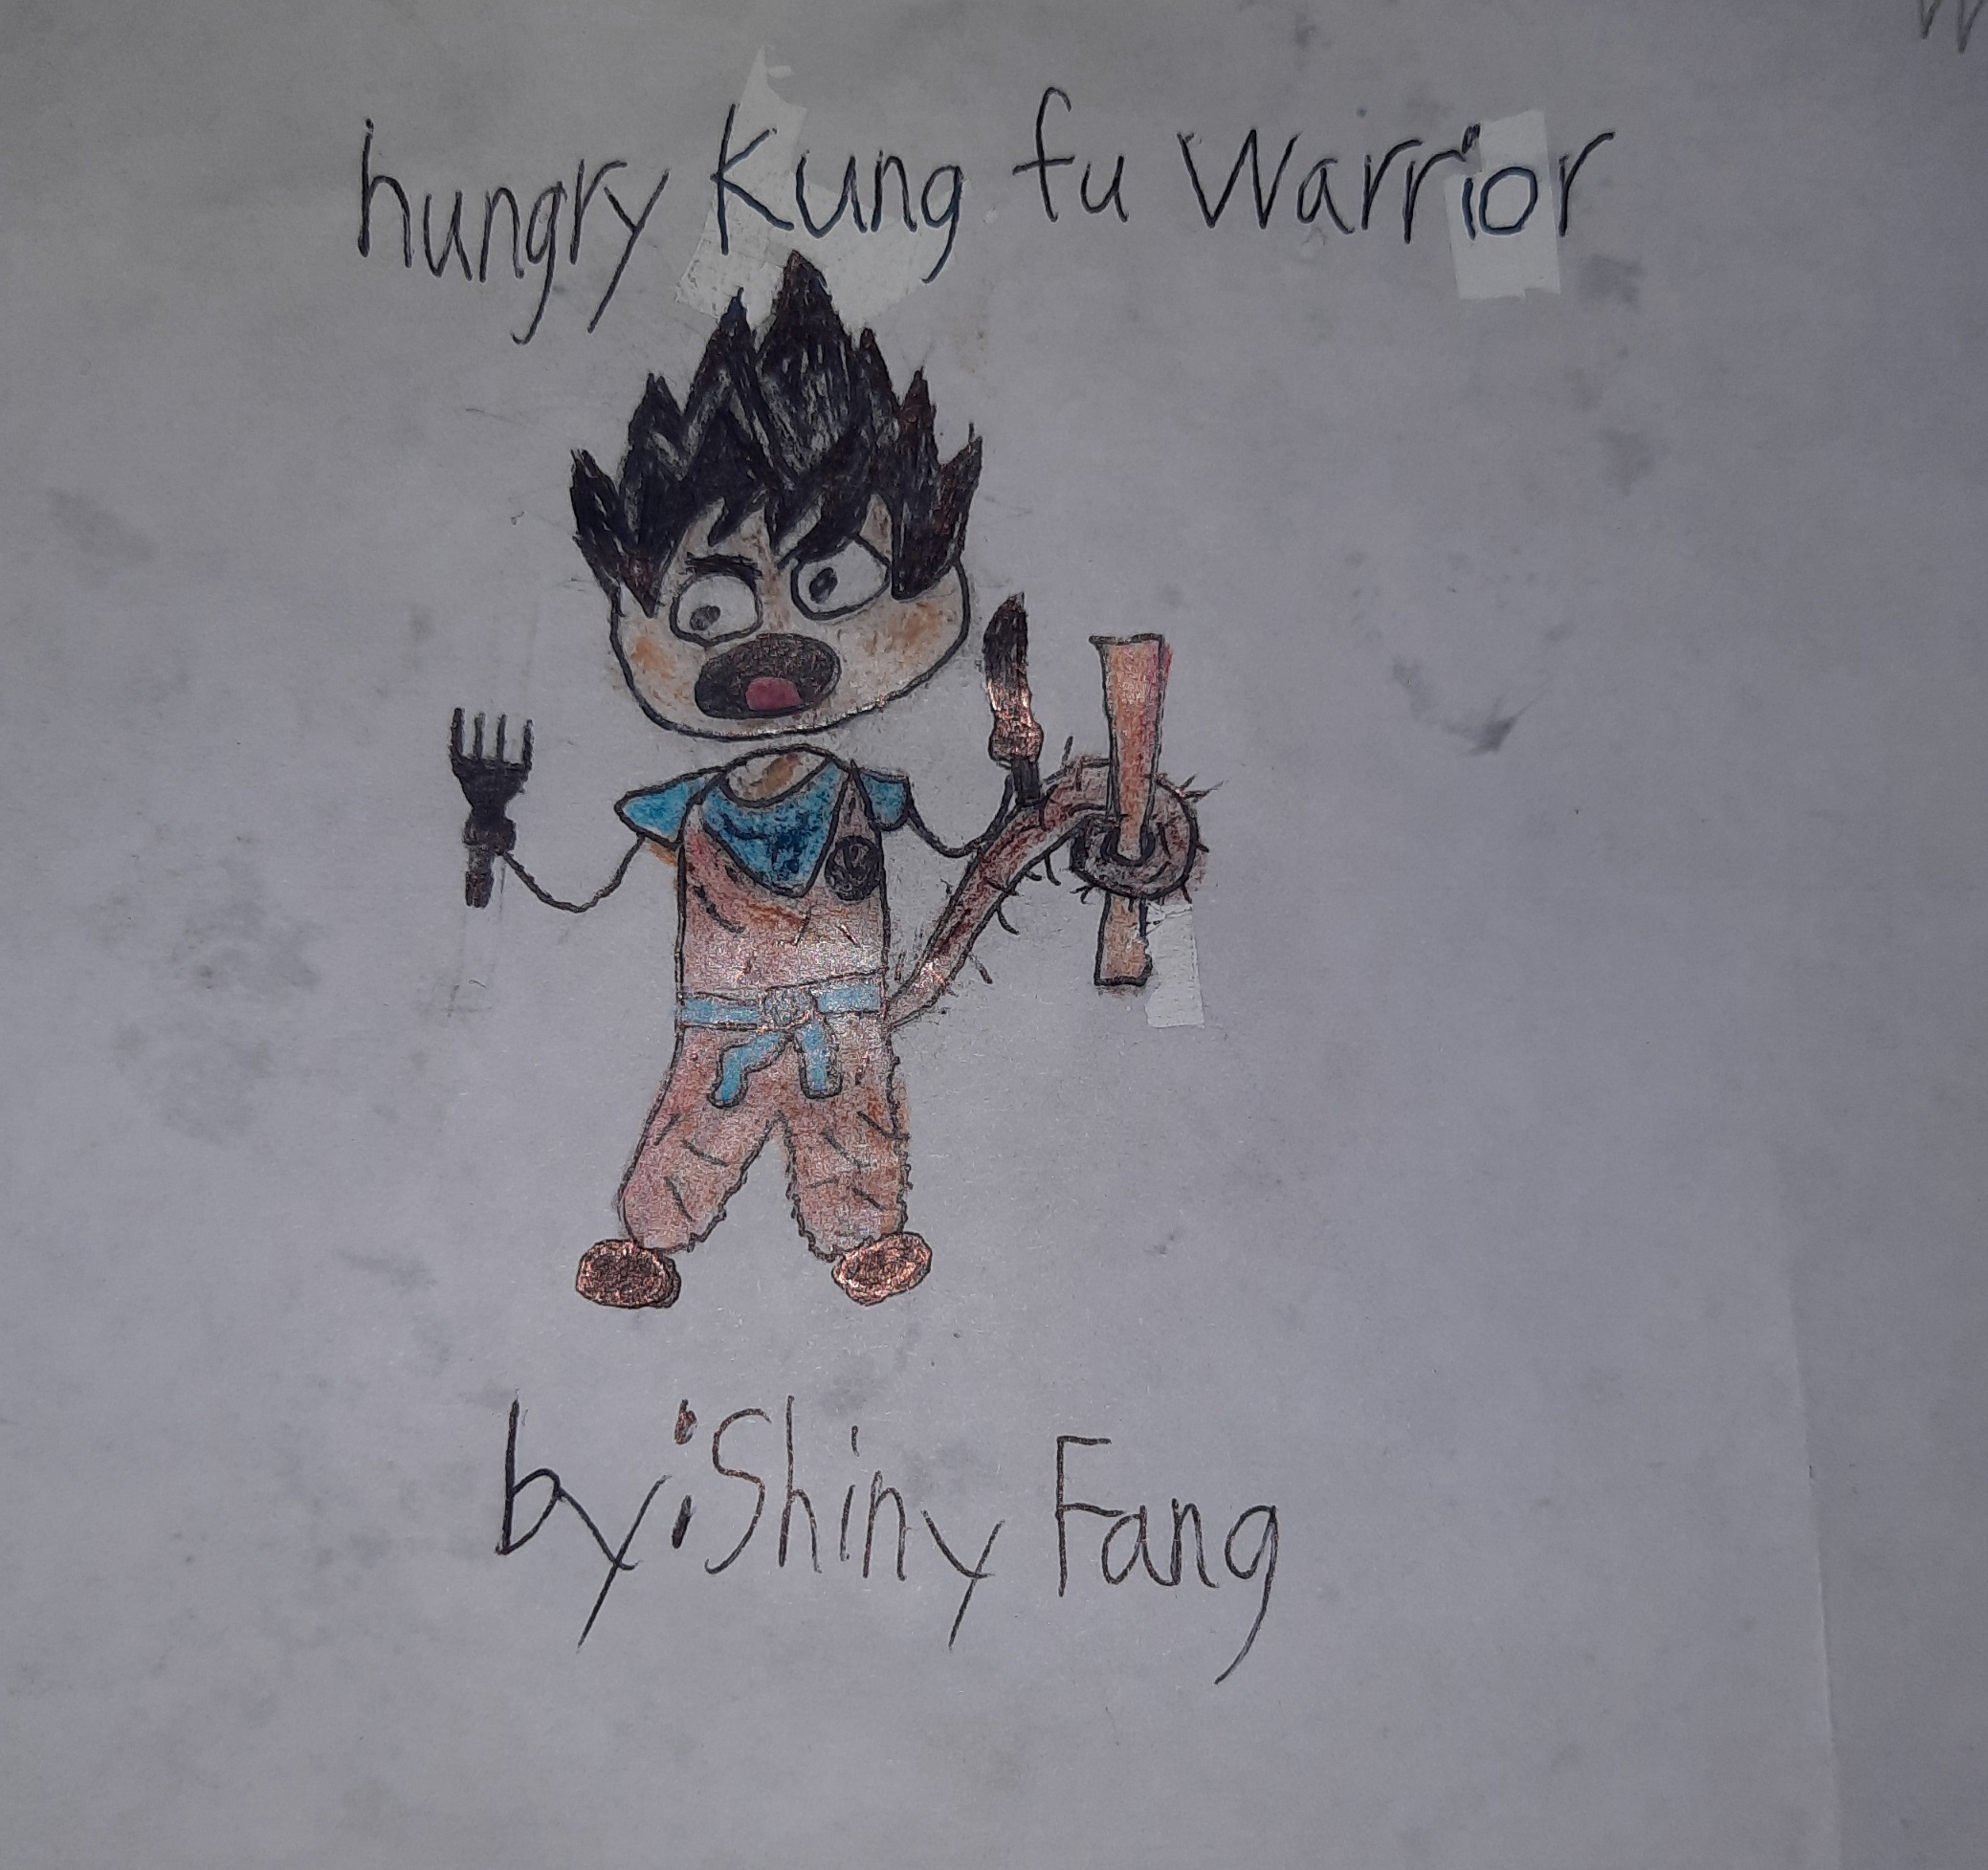 Hungry Kung Fu Warrior by Shiny Fang